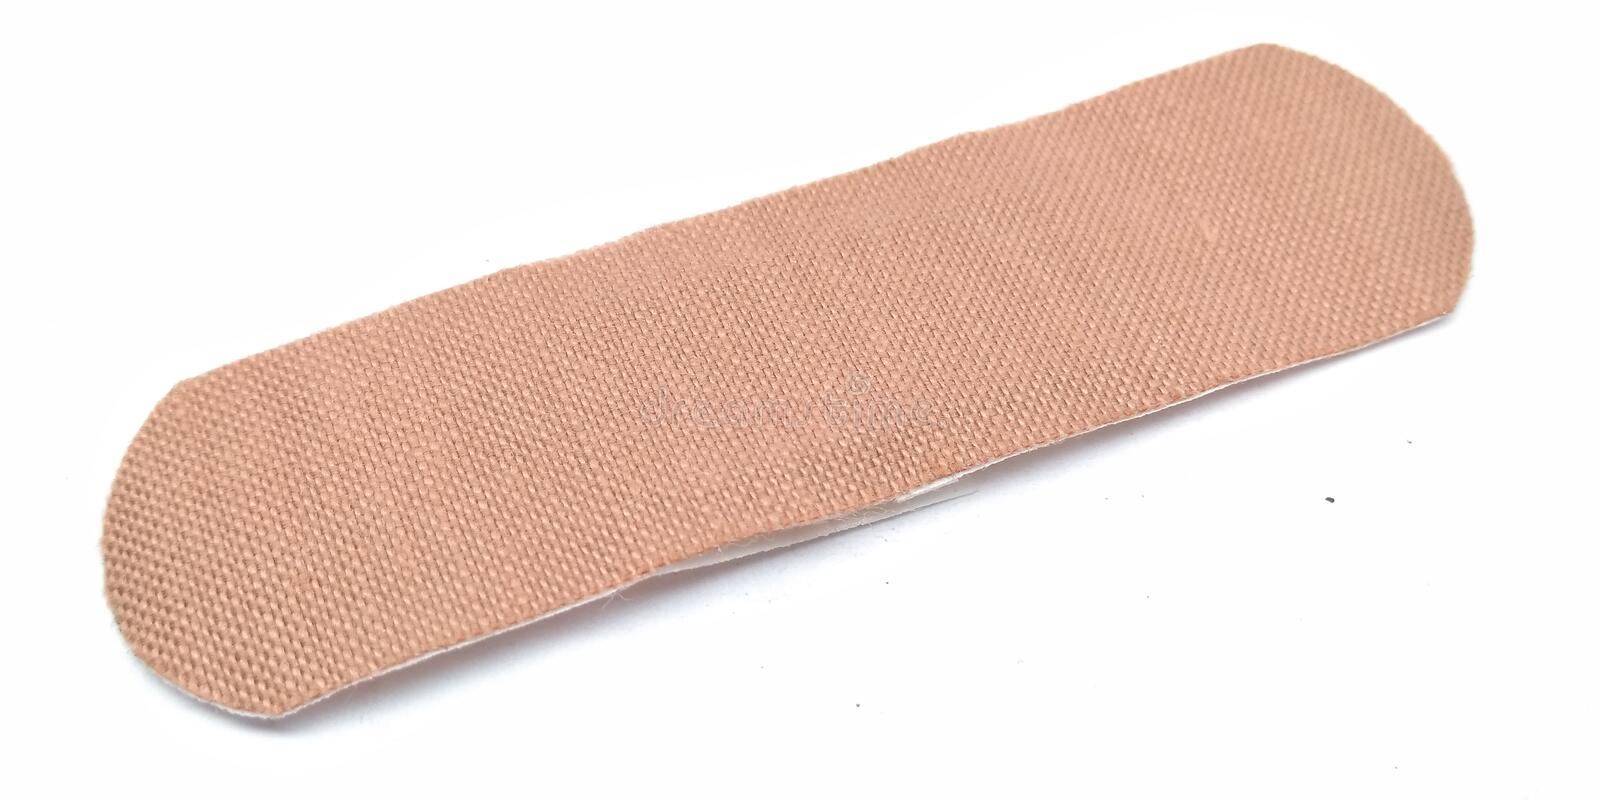 A picture of bandage  on white background, stock image